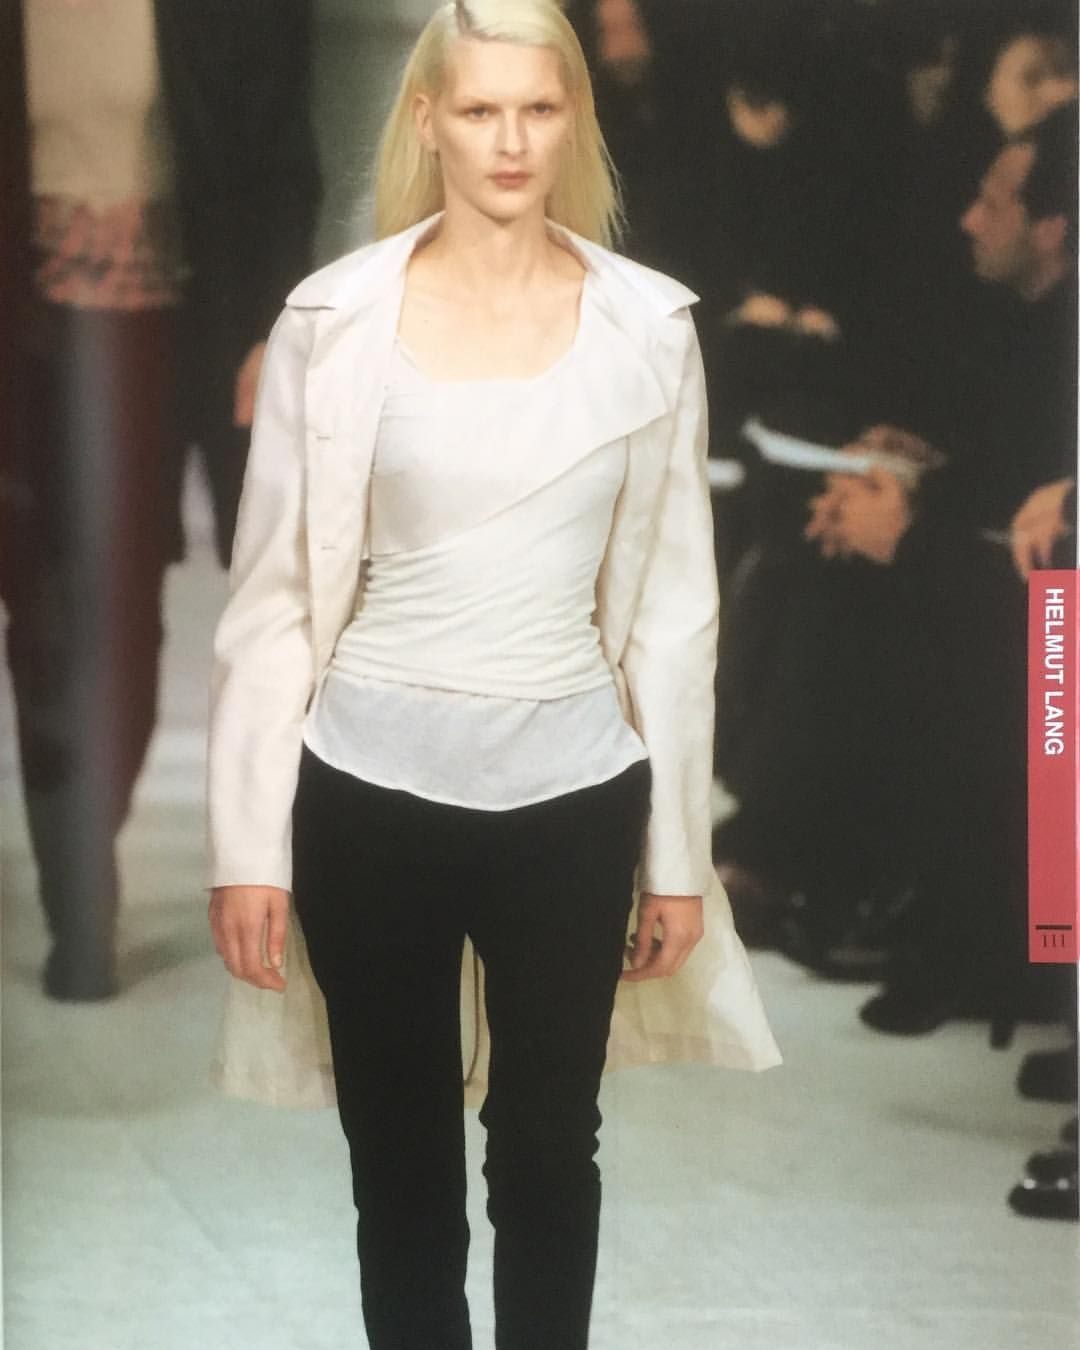 Helmut Lang Spring Summer 97 From Gap Collections Featuring Major Collections Of Every Designer Consisting Of 1500 Original Helmut Lang Fashion Spring Summer